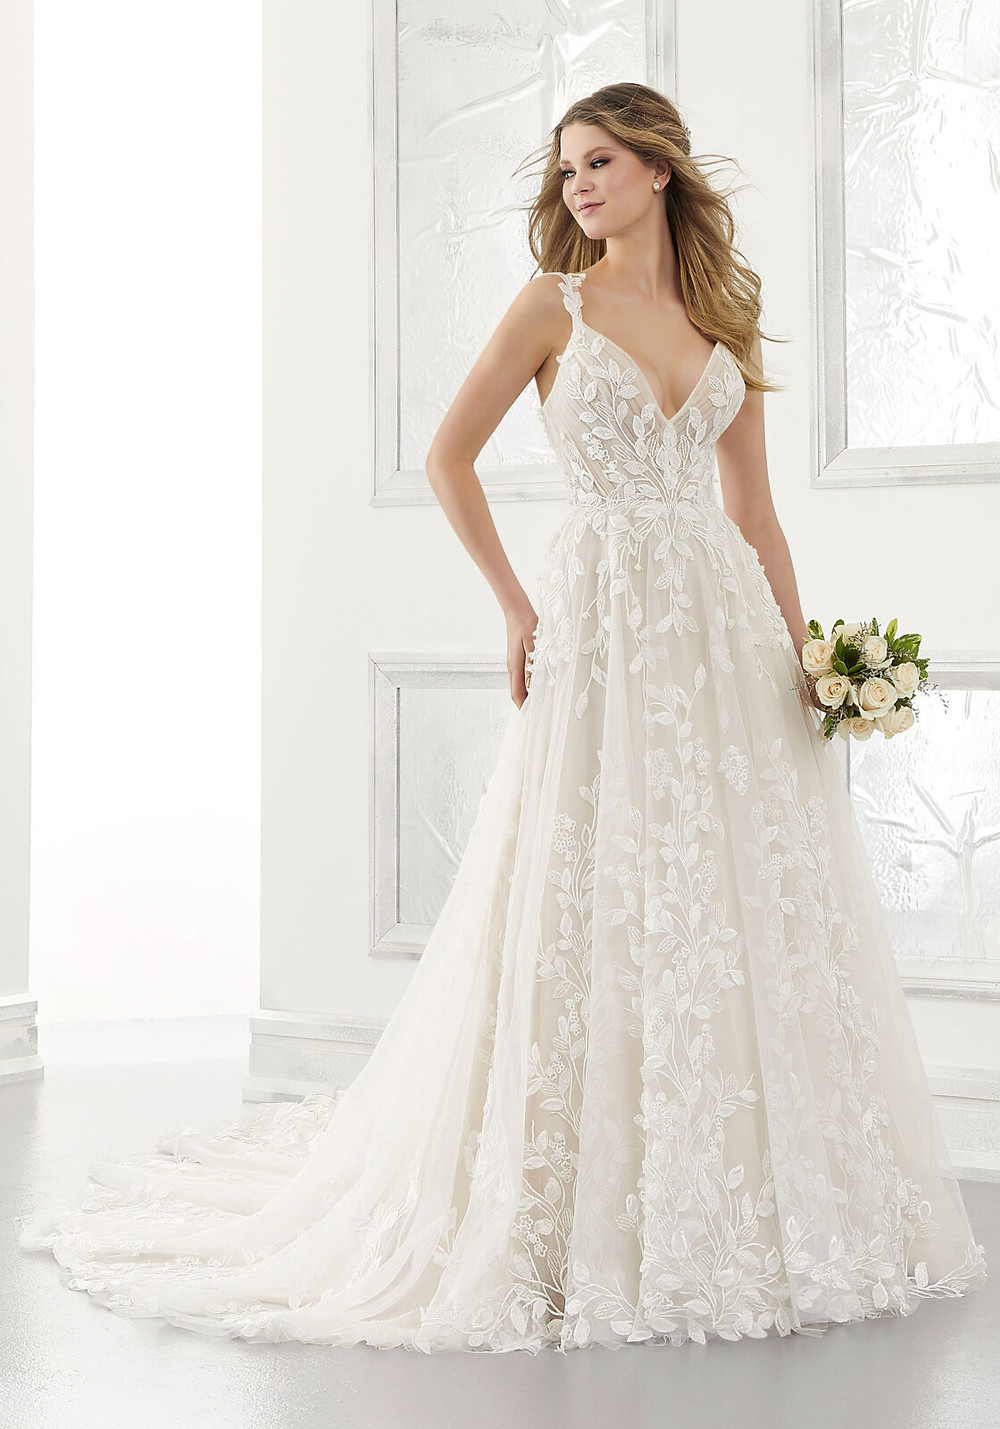 Adelaide 2171 by Morilee Bridal, wedding dresses available at our boutique near Lincoln